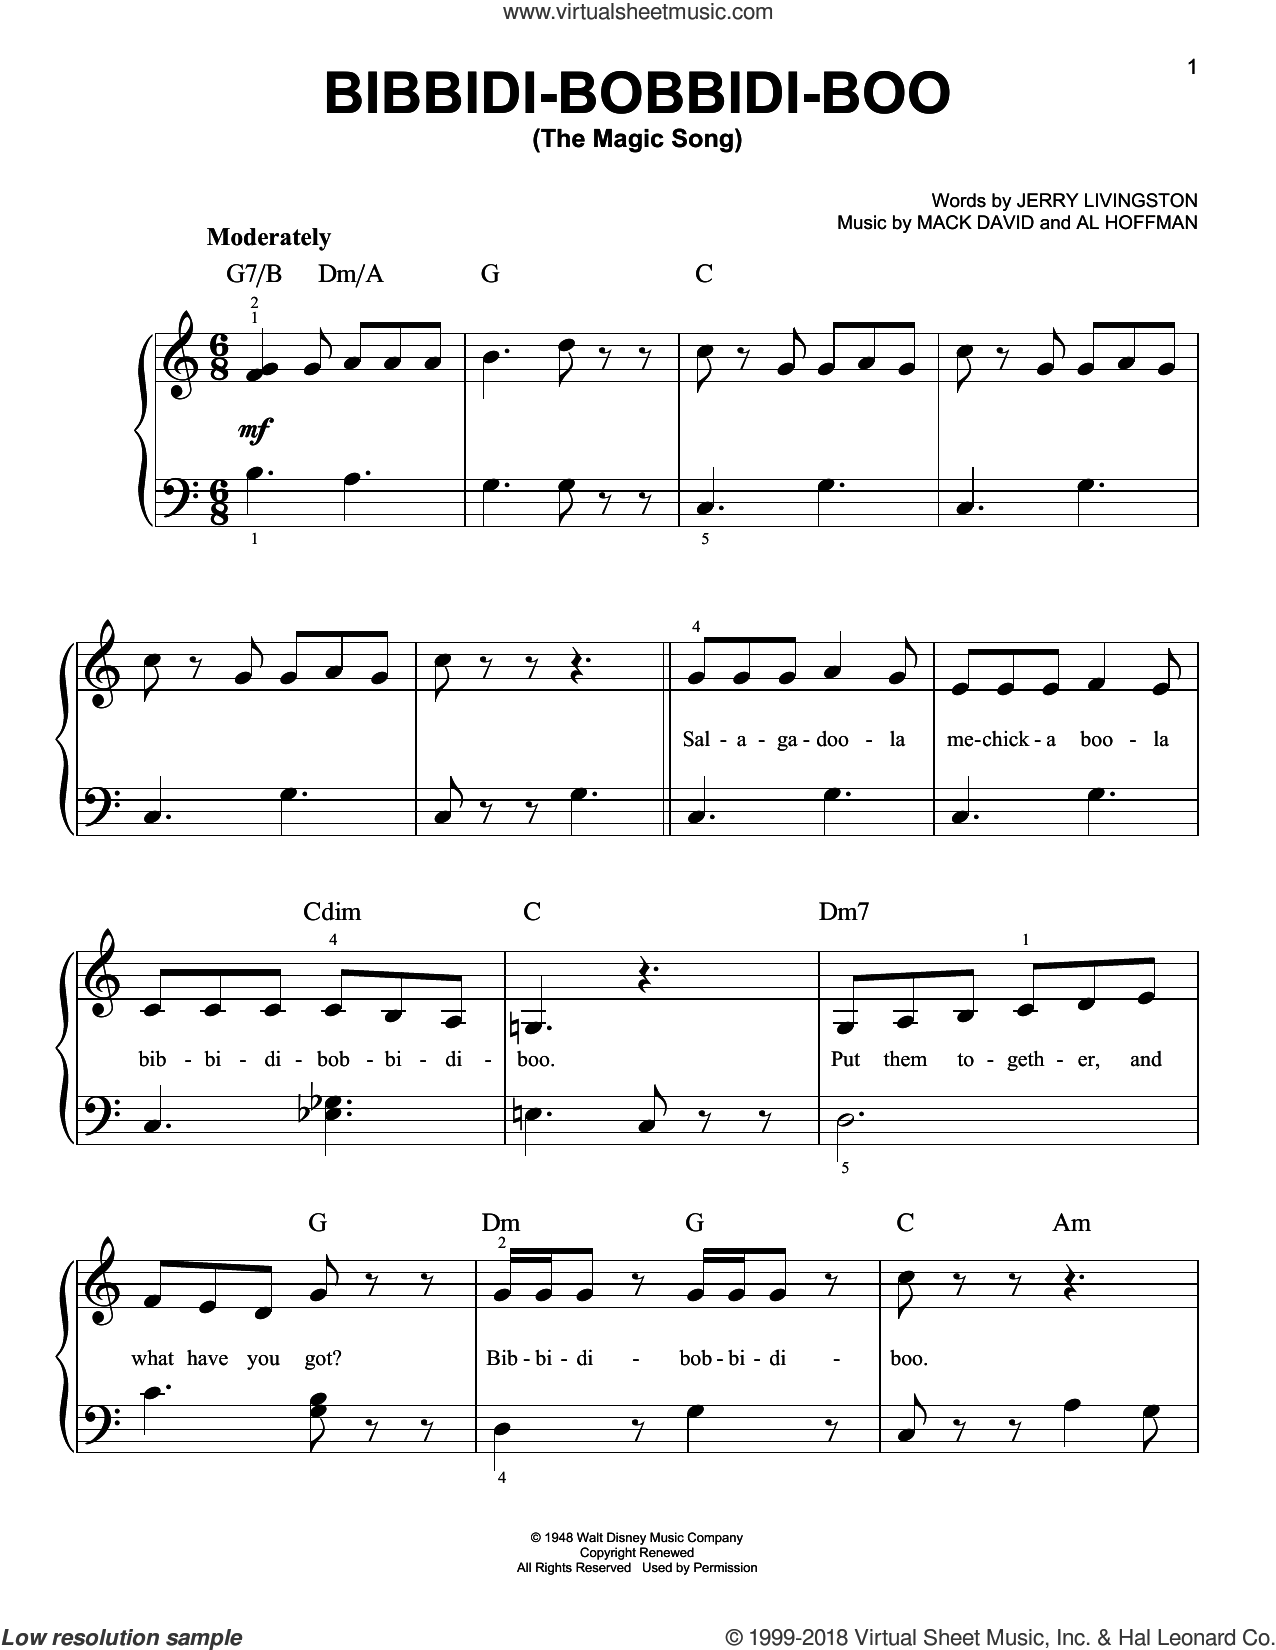 Bibbidi-Bobbidi-Boo (The Magic Song), (Easy) sheet music for piano solo by Al Hoffman, Patrick Doyle, Jerry Livingston and Mack David, easy. Score Image Preview.